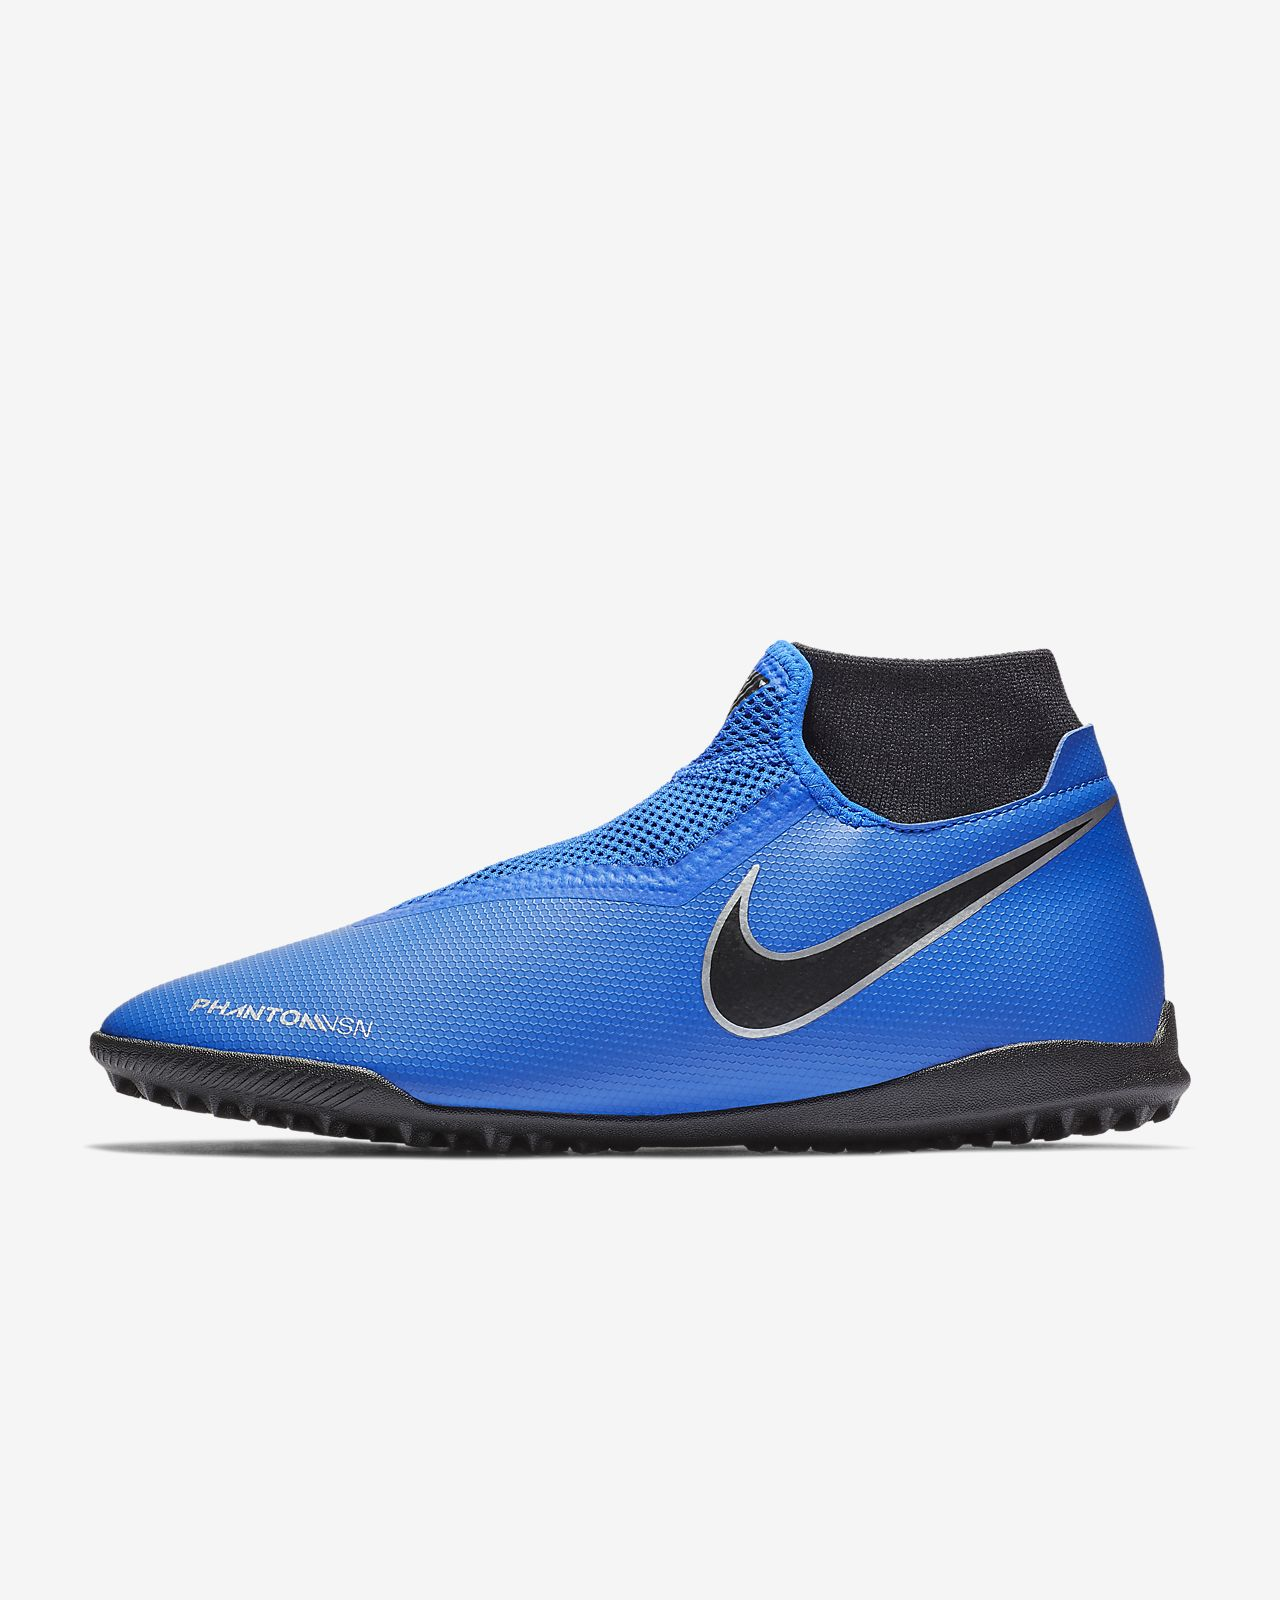 Nike Phantom Vision Academy Dynamic Fit Turf Football Shoe